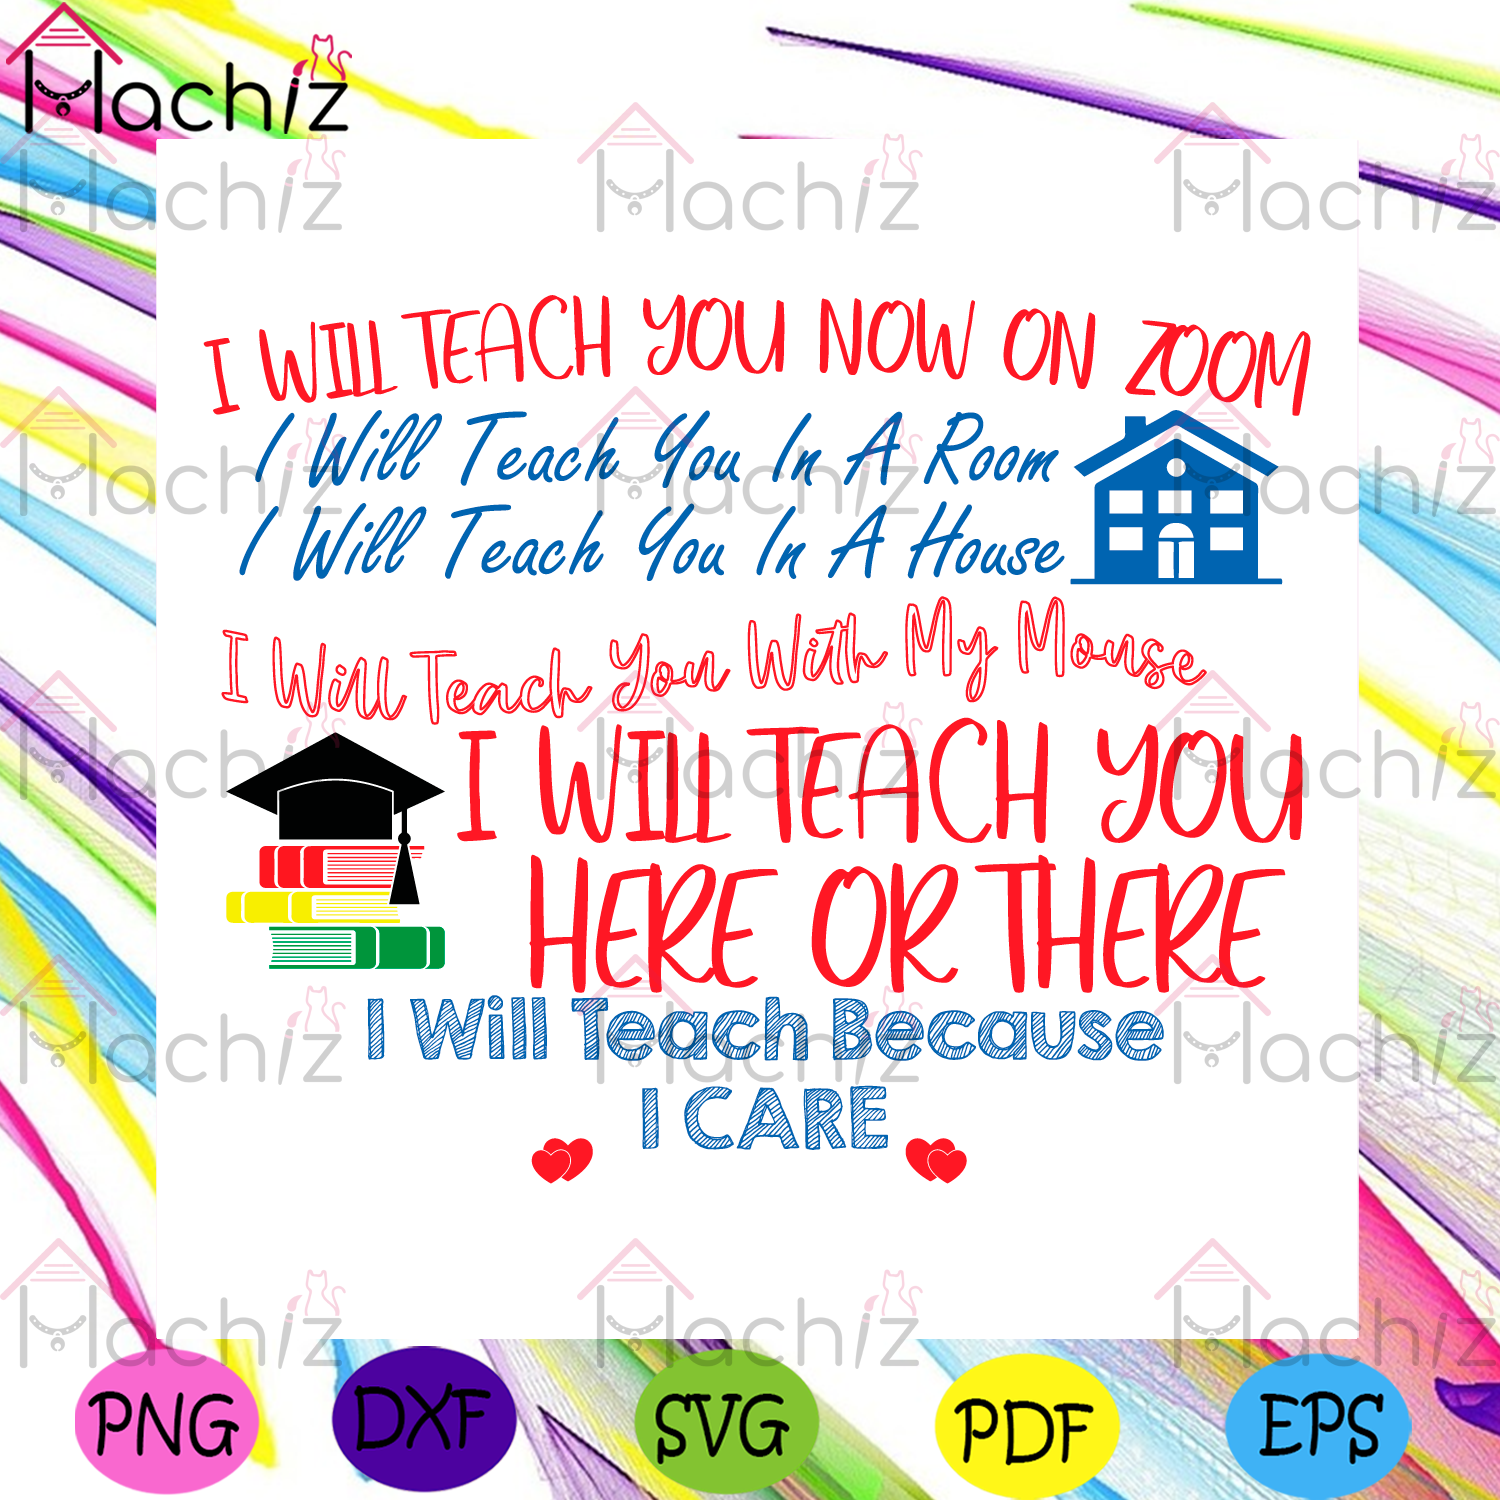 I Will Teach You Her Or There Svg, Trending Svg, Teaching Svg, Teacher Svg, Teacher Students, Teacher Life Svg, Dr Seuss Svg, Teacher Gift, Online Teaching Svg, Virtual Teacher Svg, Virtual Learning